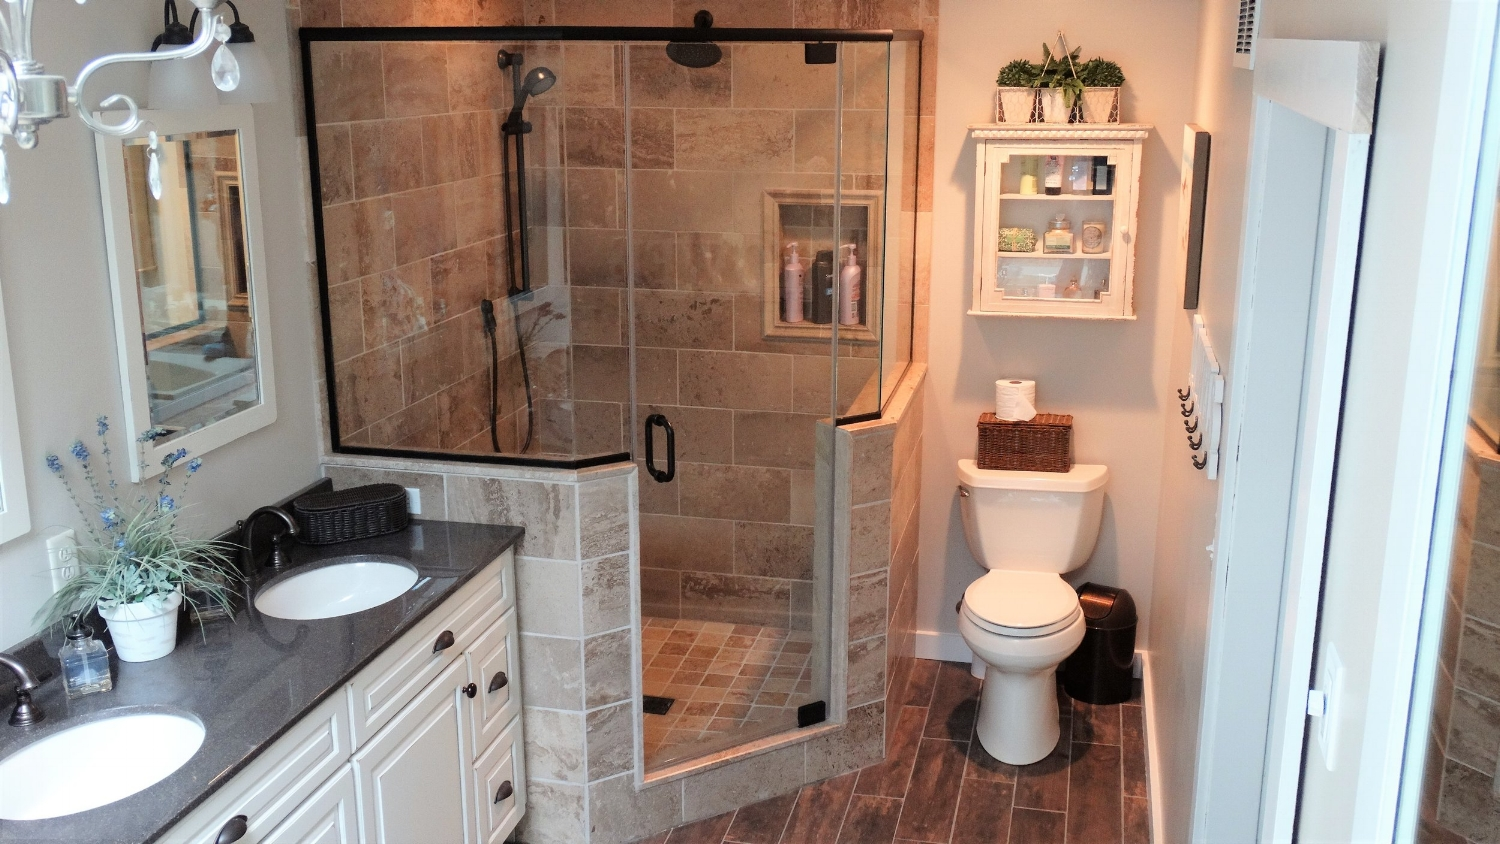 custom-tile-shower-bathroom-design-plank-tile-floors-vanity-quartz.jpg